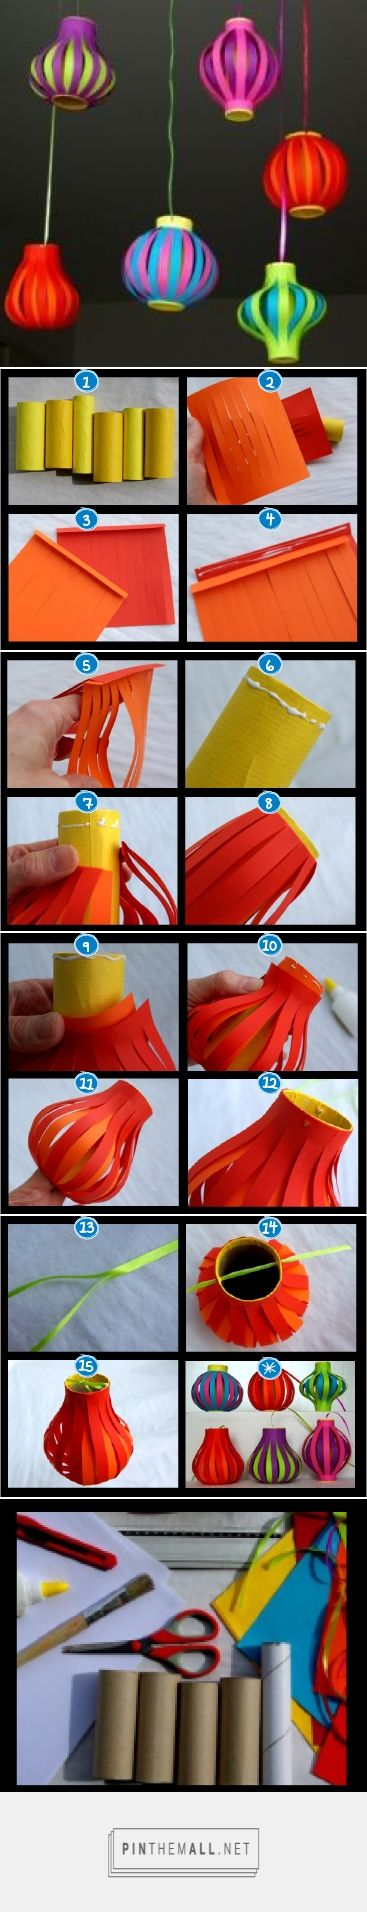 DIY - Un lampion en papier                                                                                                                                                      Plus                                                                                                                                                                                 Plus: